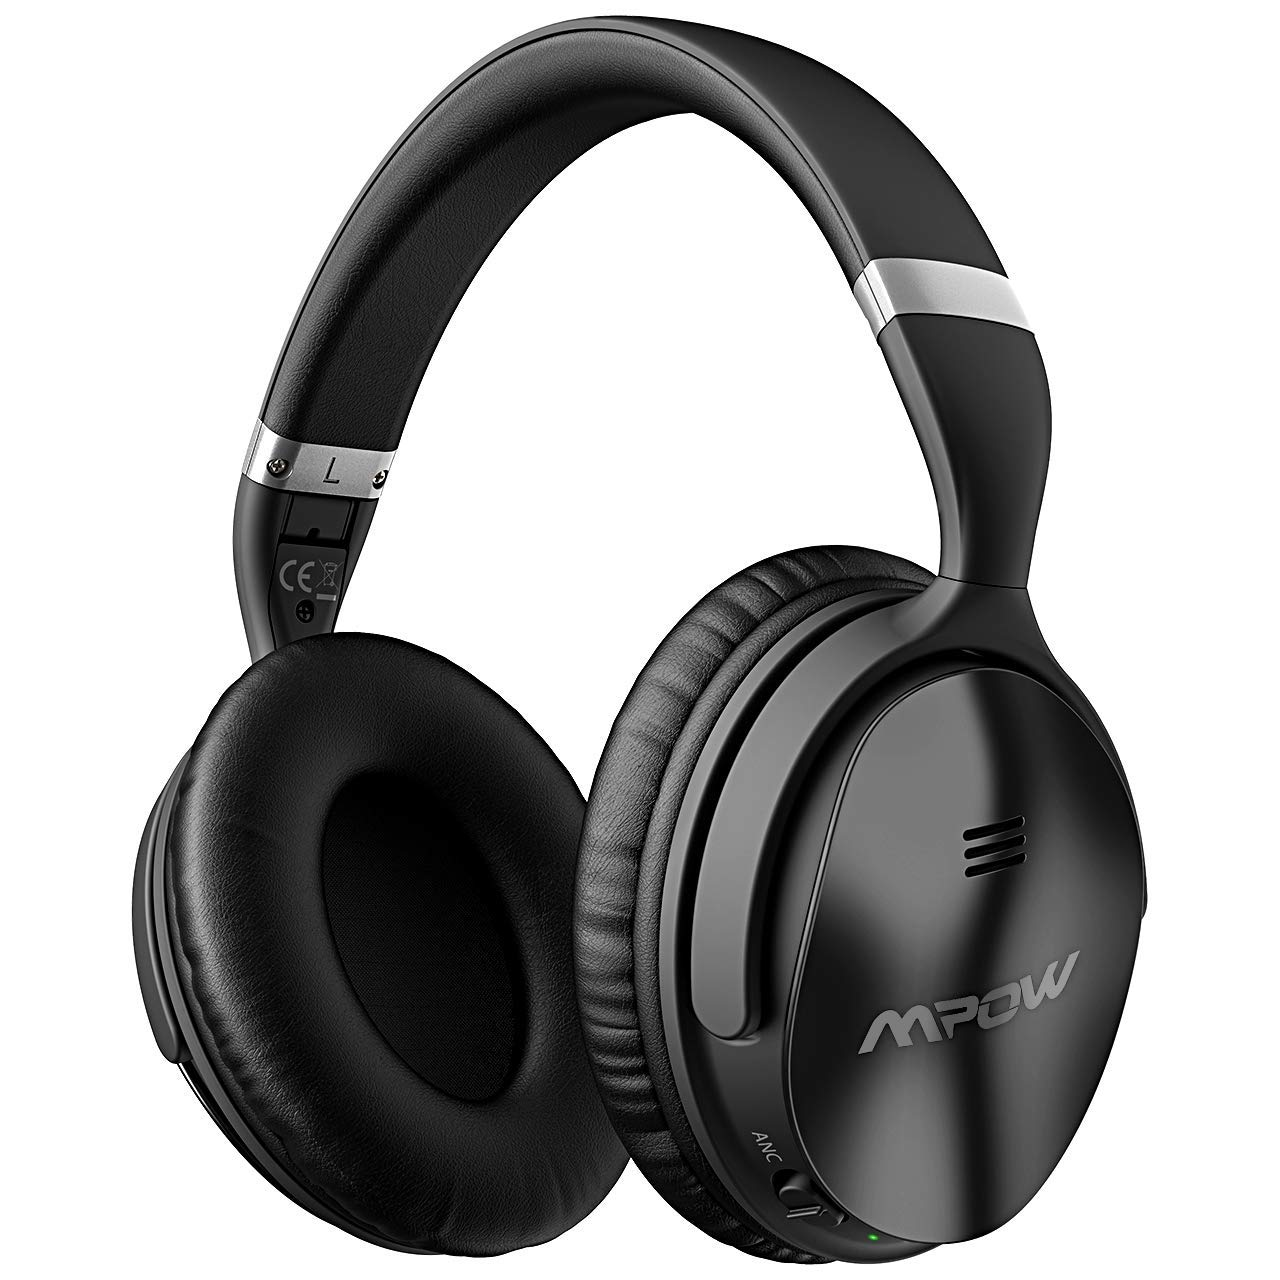 Best noise cancelling headphones under 50 9